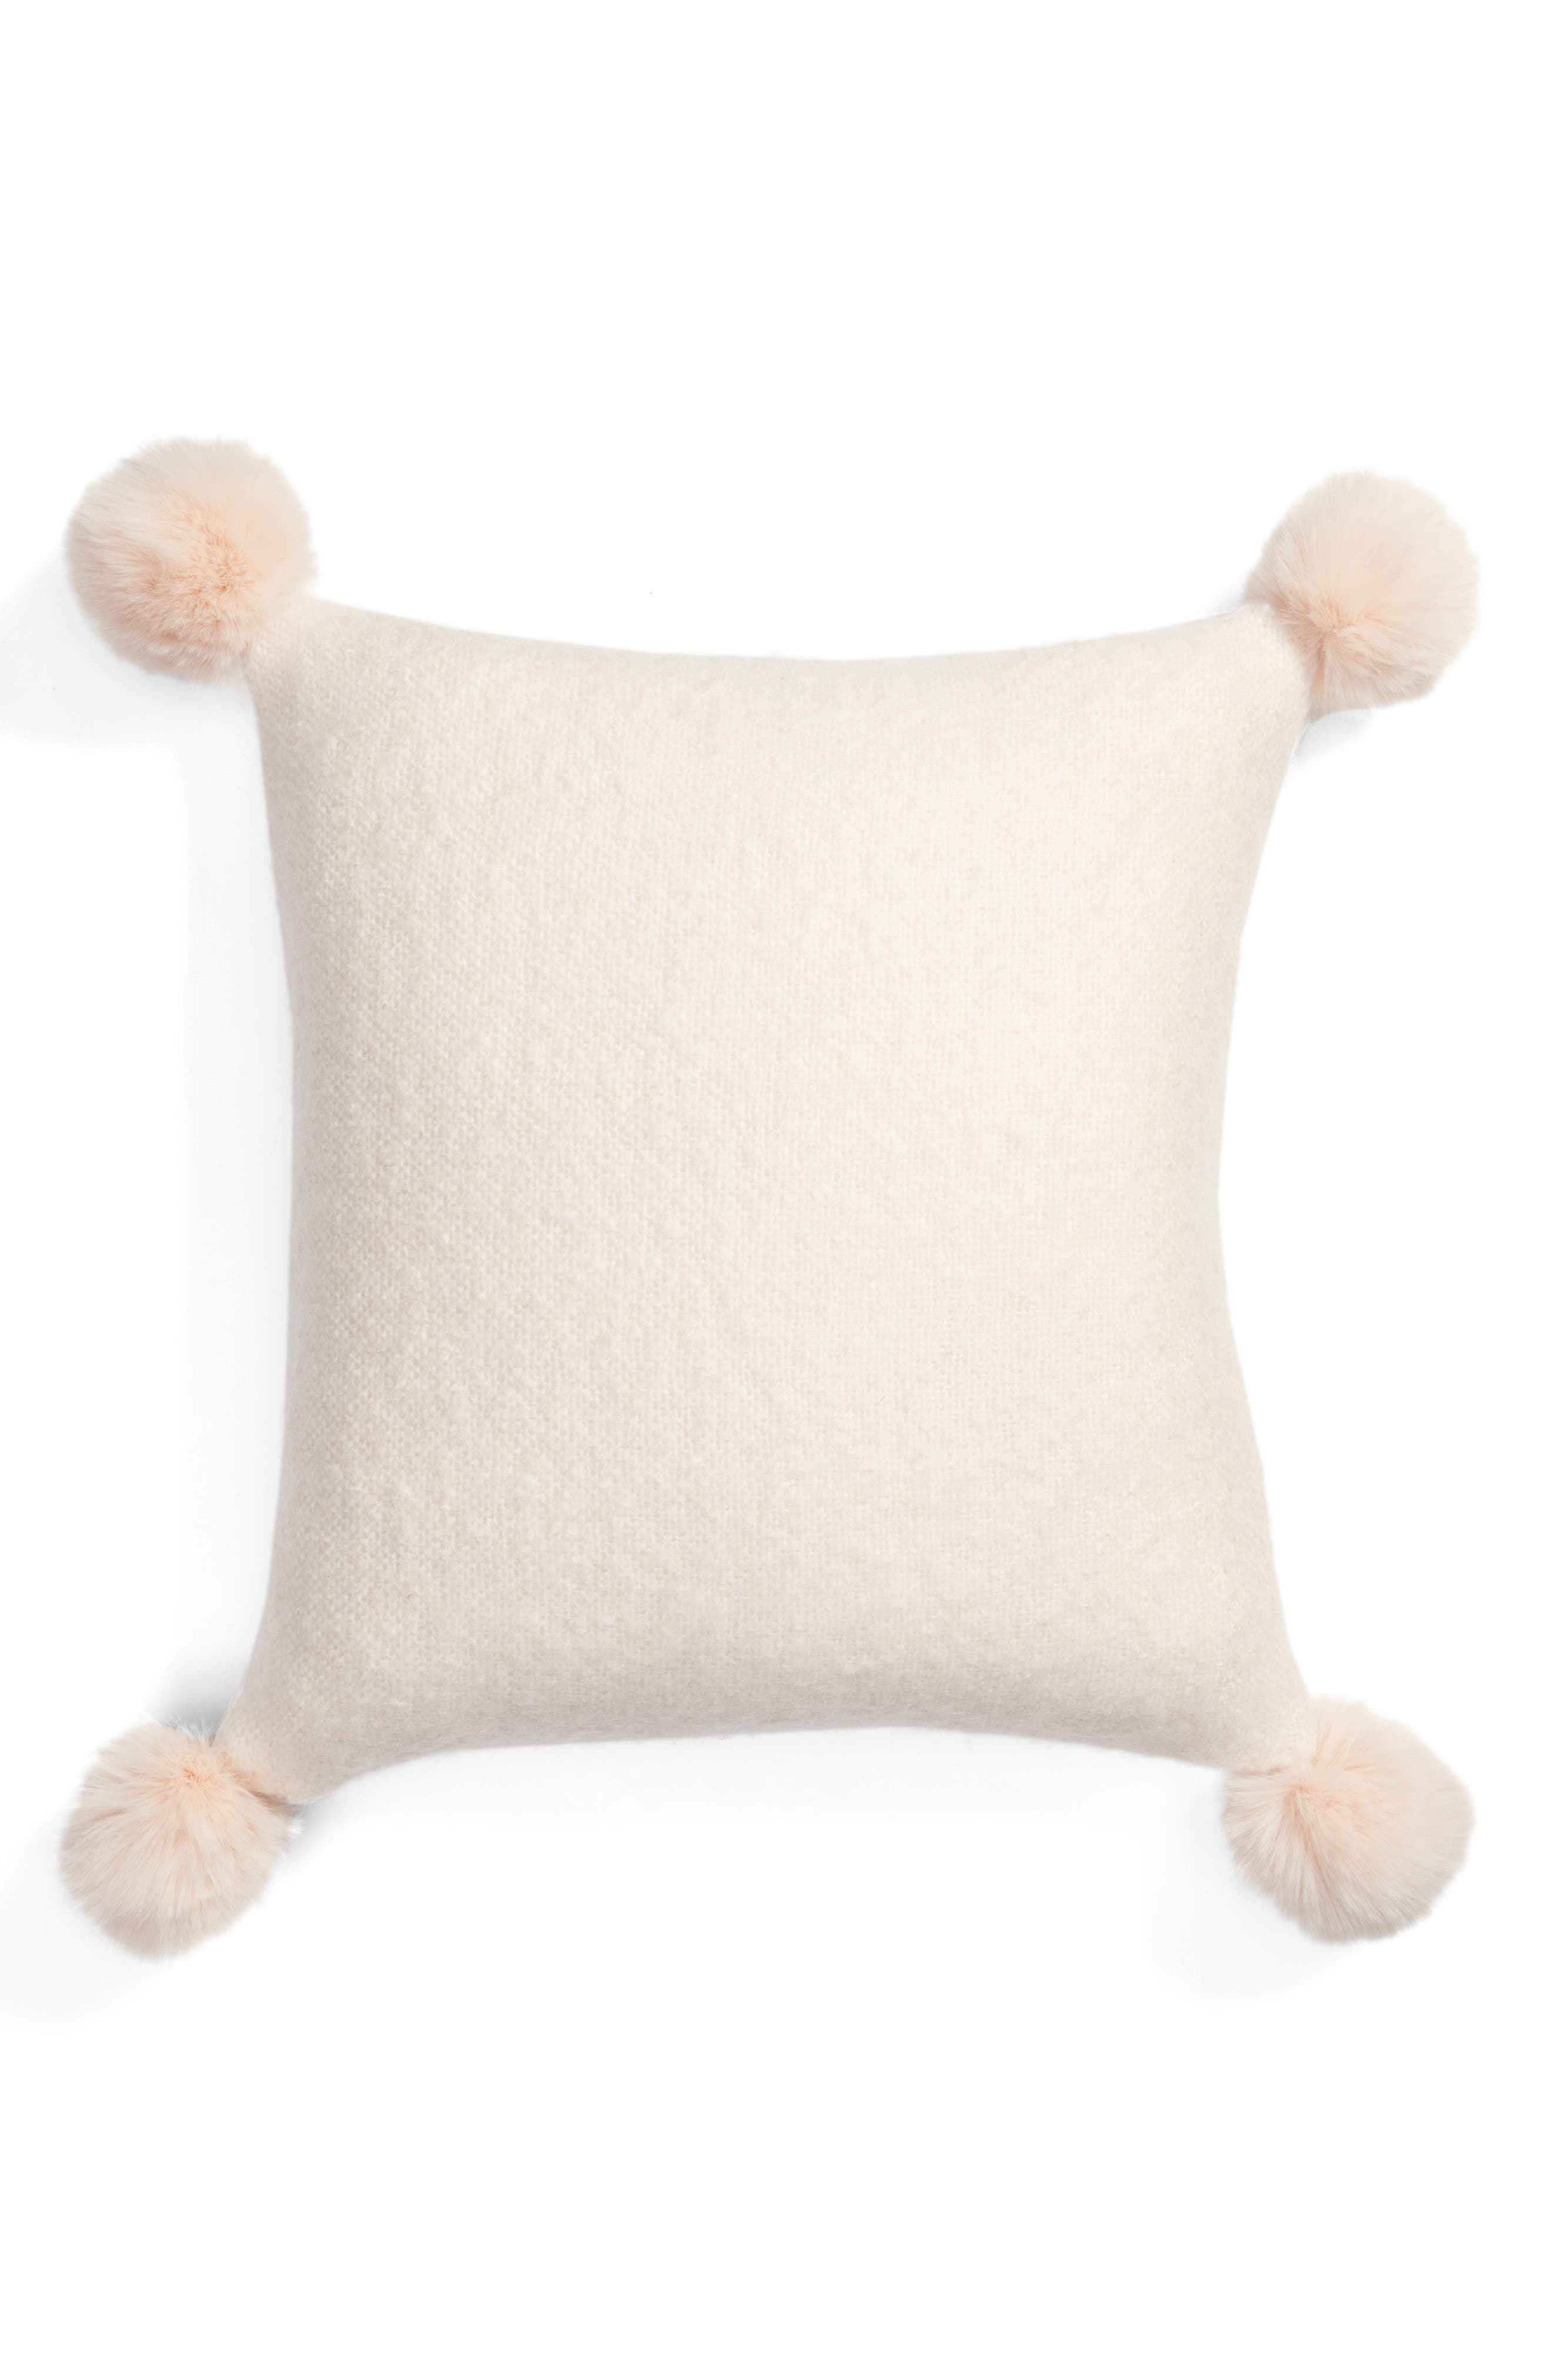 Nordstrom at Home Brushed Accent Pillow with Pompoms